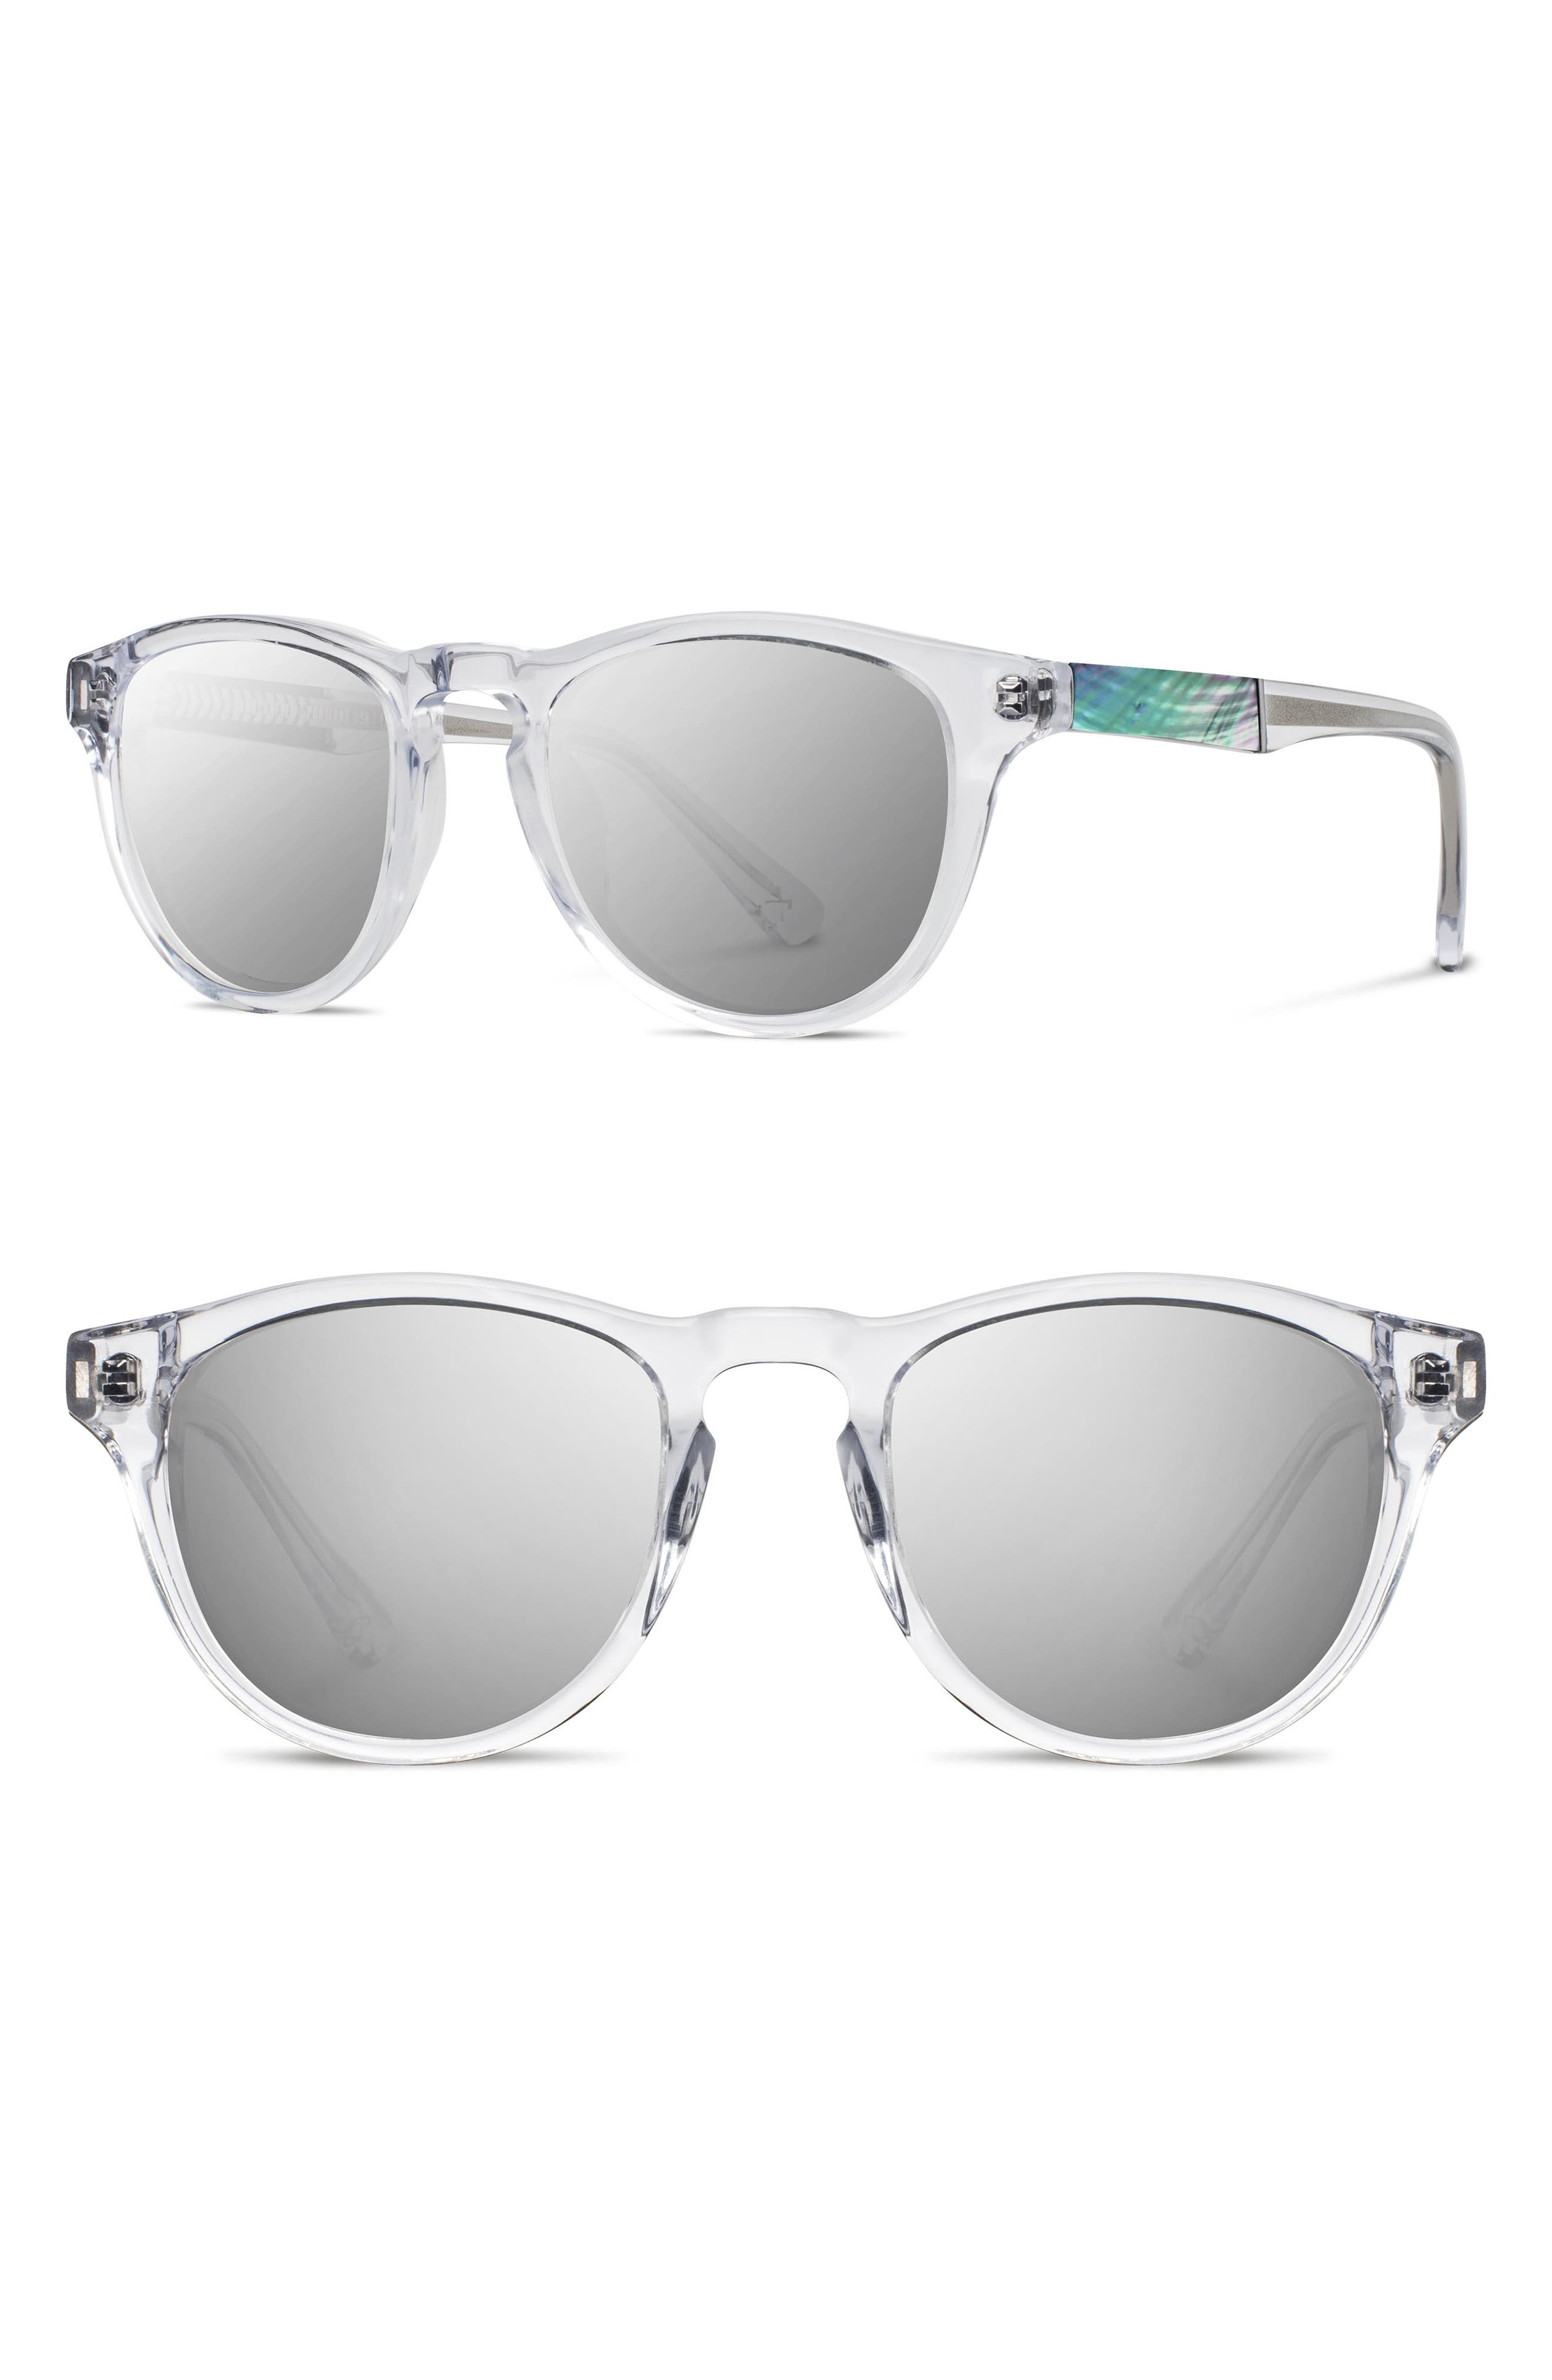 SHWOOD Ace 48Mm Sunglasses - Crystal/ Abalone Shell/ Silver